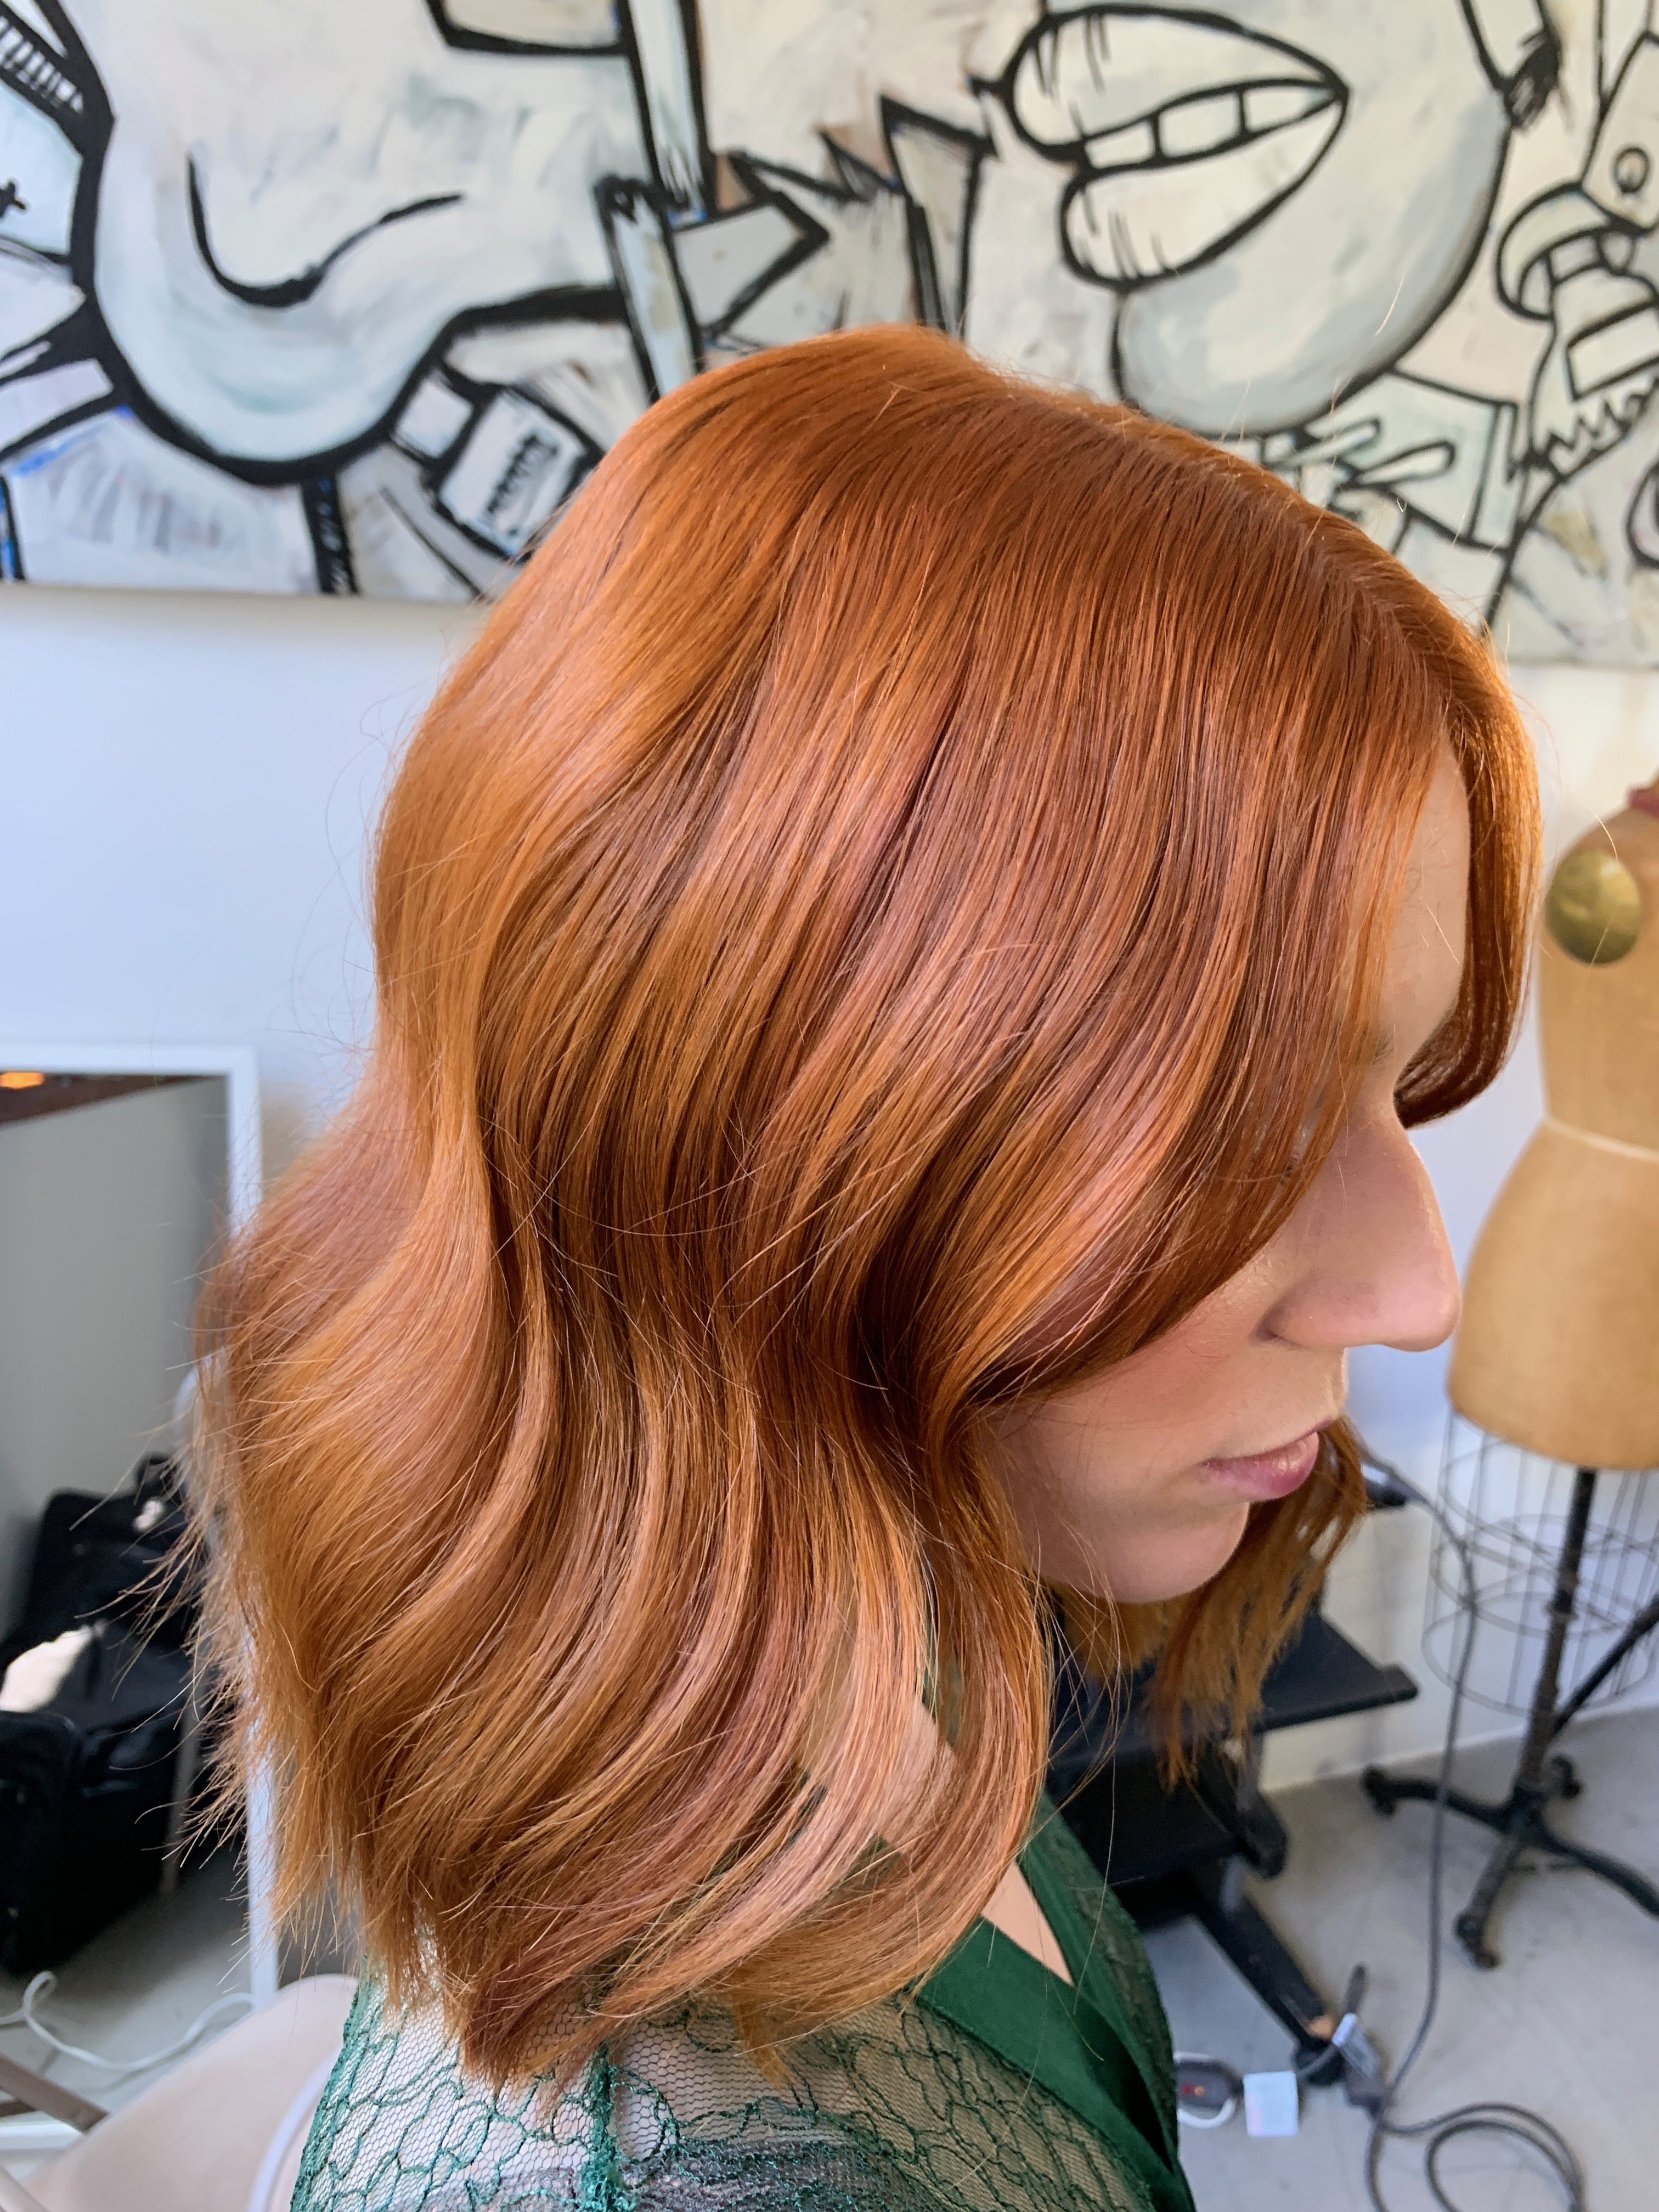 Hair color by Steven D. Waldman (@stevenDWaldman), Director of Technical Training for the Ratner Companies.